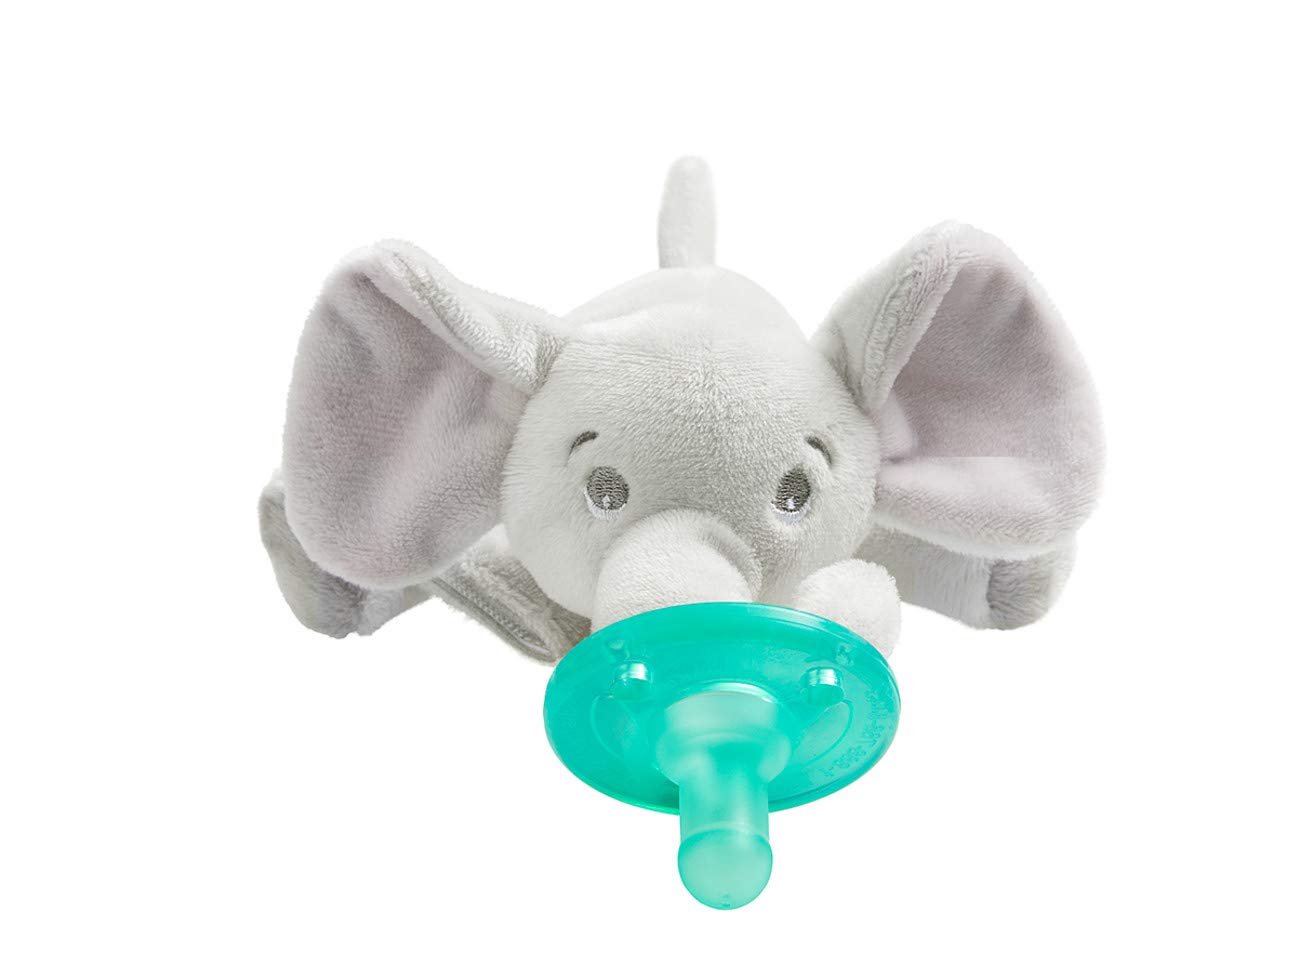 Philips Avent Soothie Snuggle Pacifier, 0-3 Months, Elephant, SCF347/03